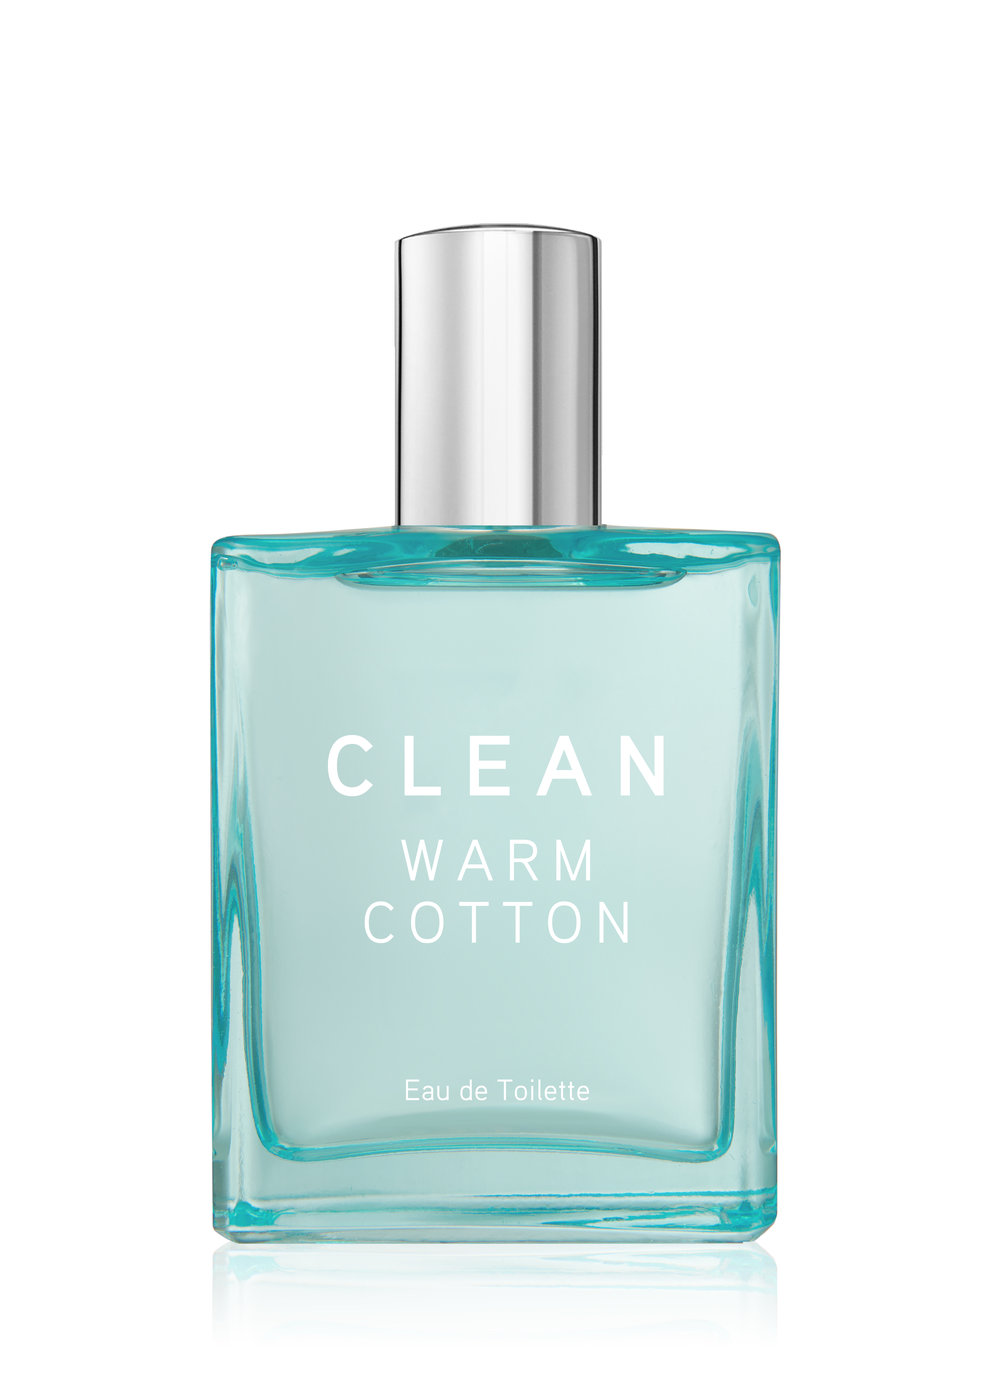 EDT_WARM COTTON_BOTTLE_122117.jpg